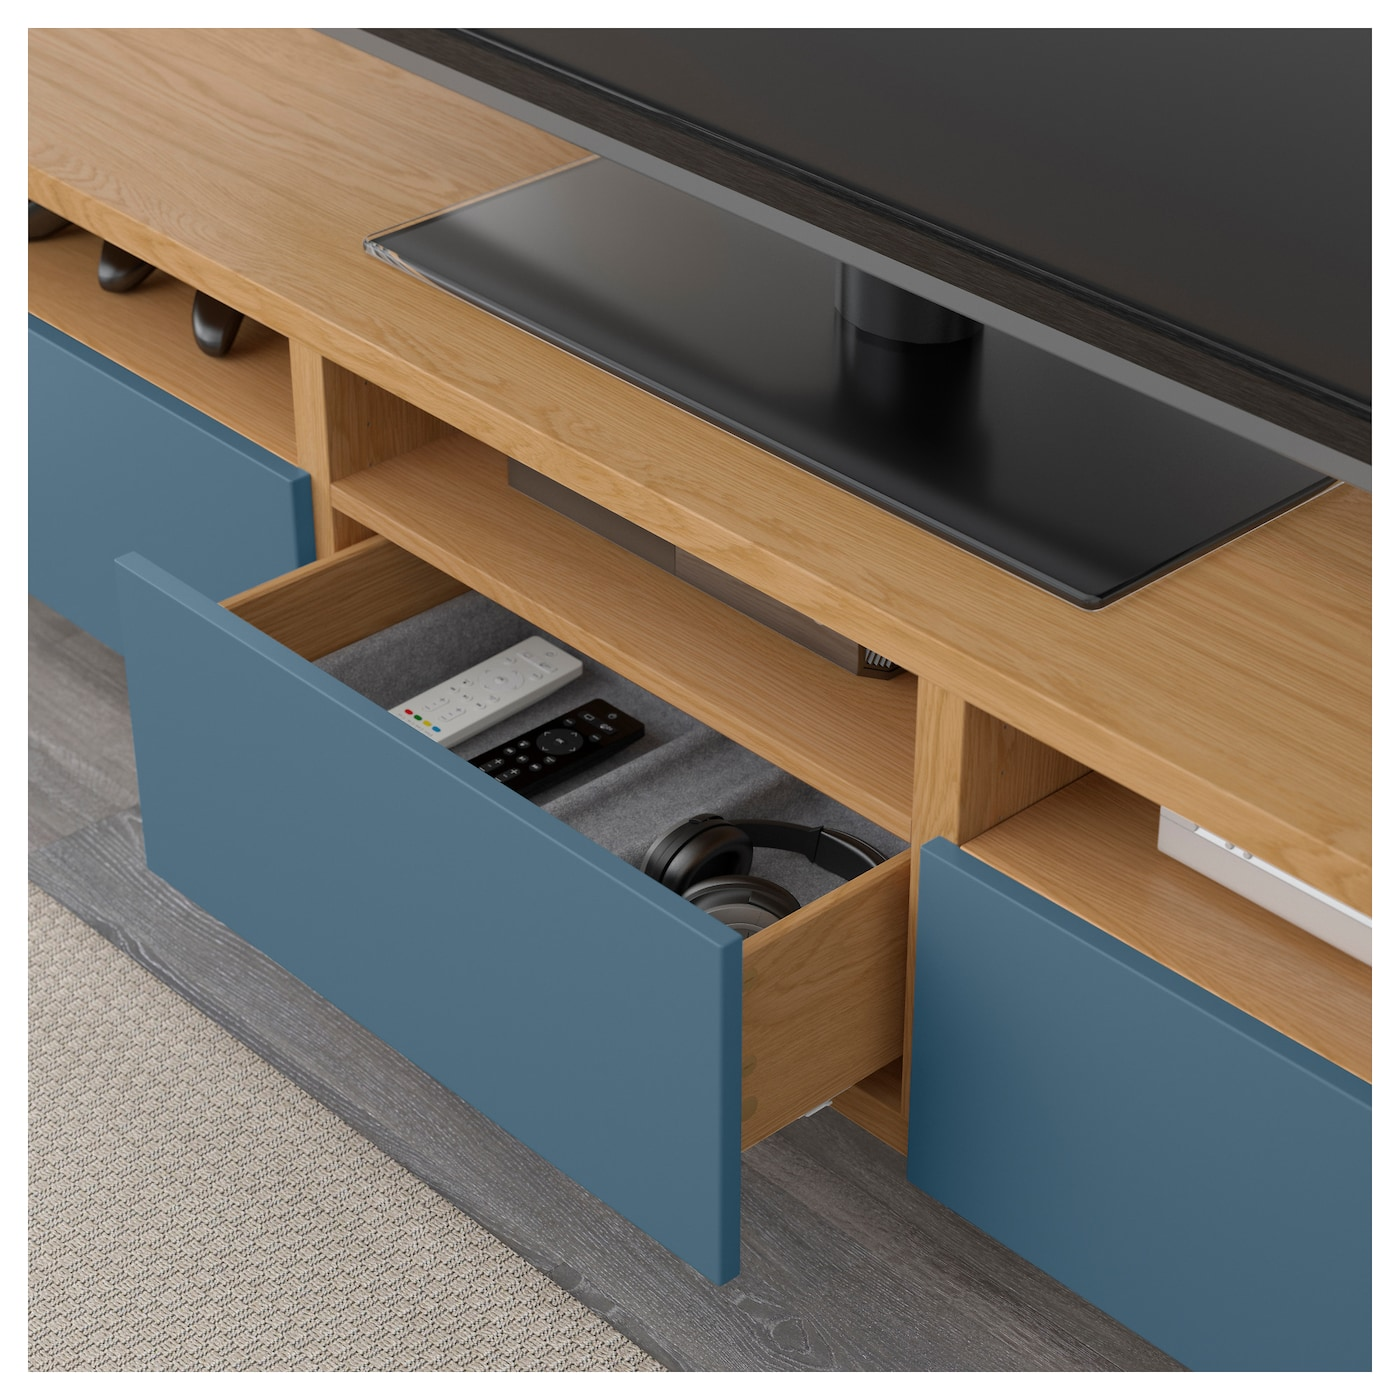 Ikea Best Tv Bench With Drawers Three Large Drawers Make